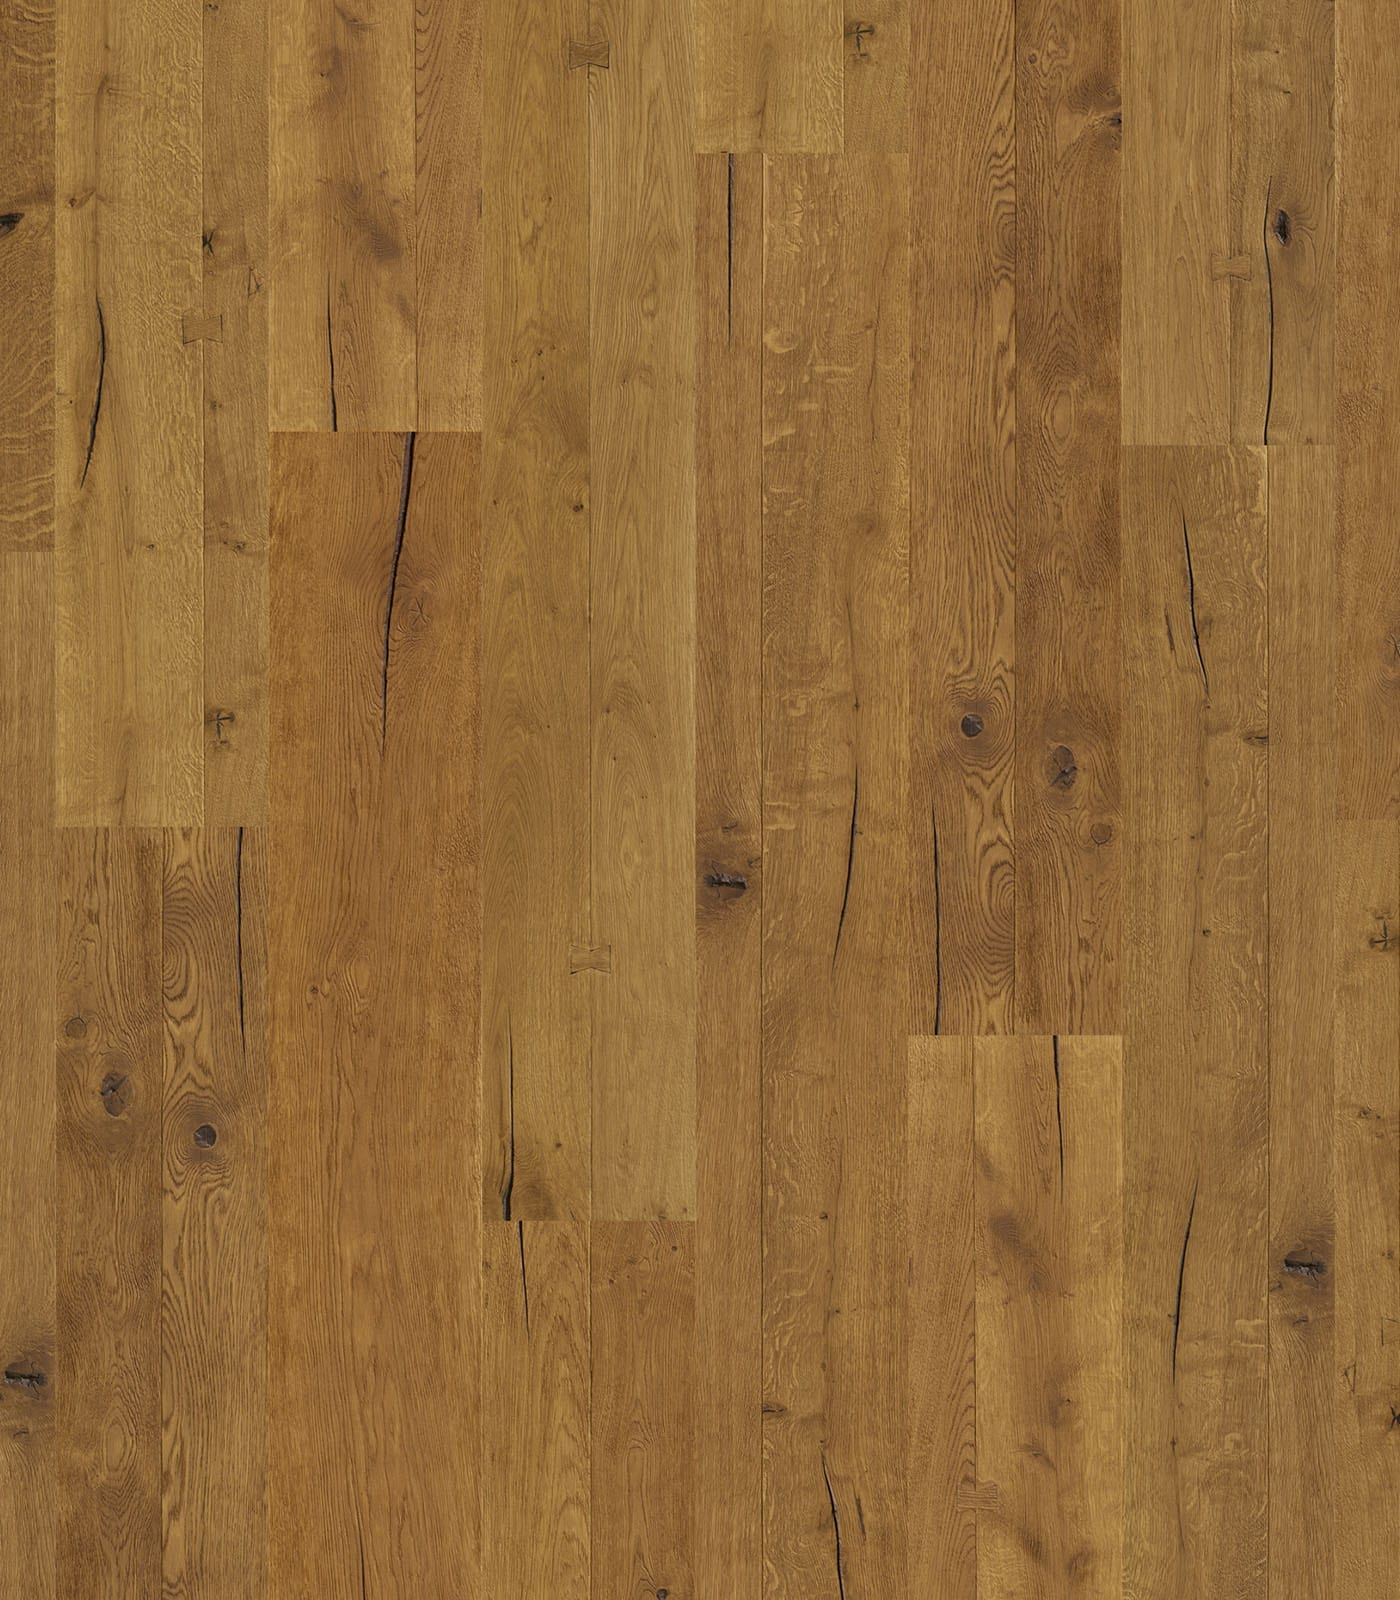 Balmoral-European Oak Floors-Heritage Collection-flat